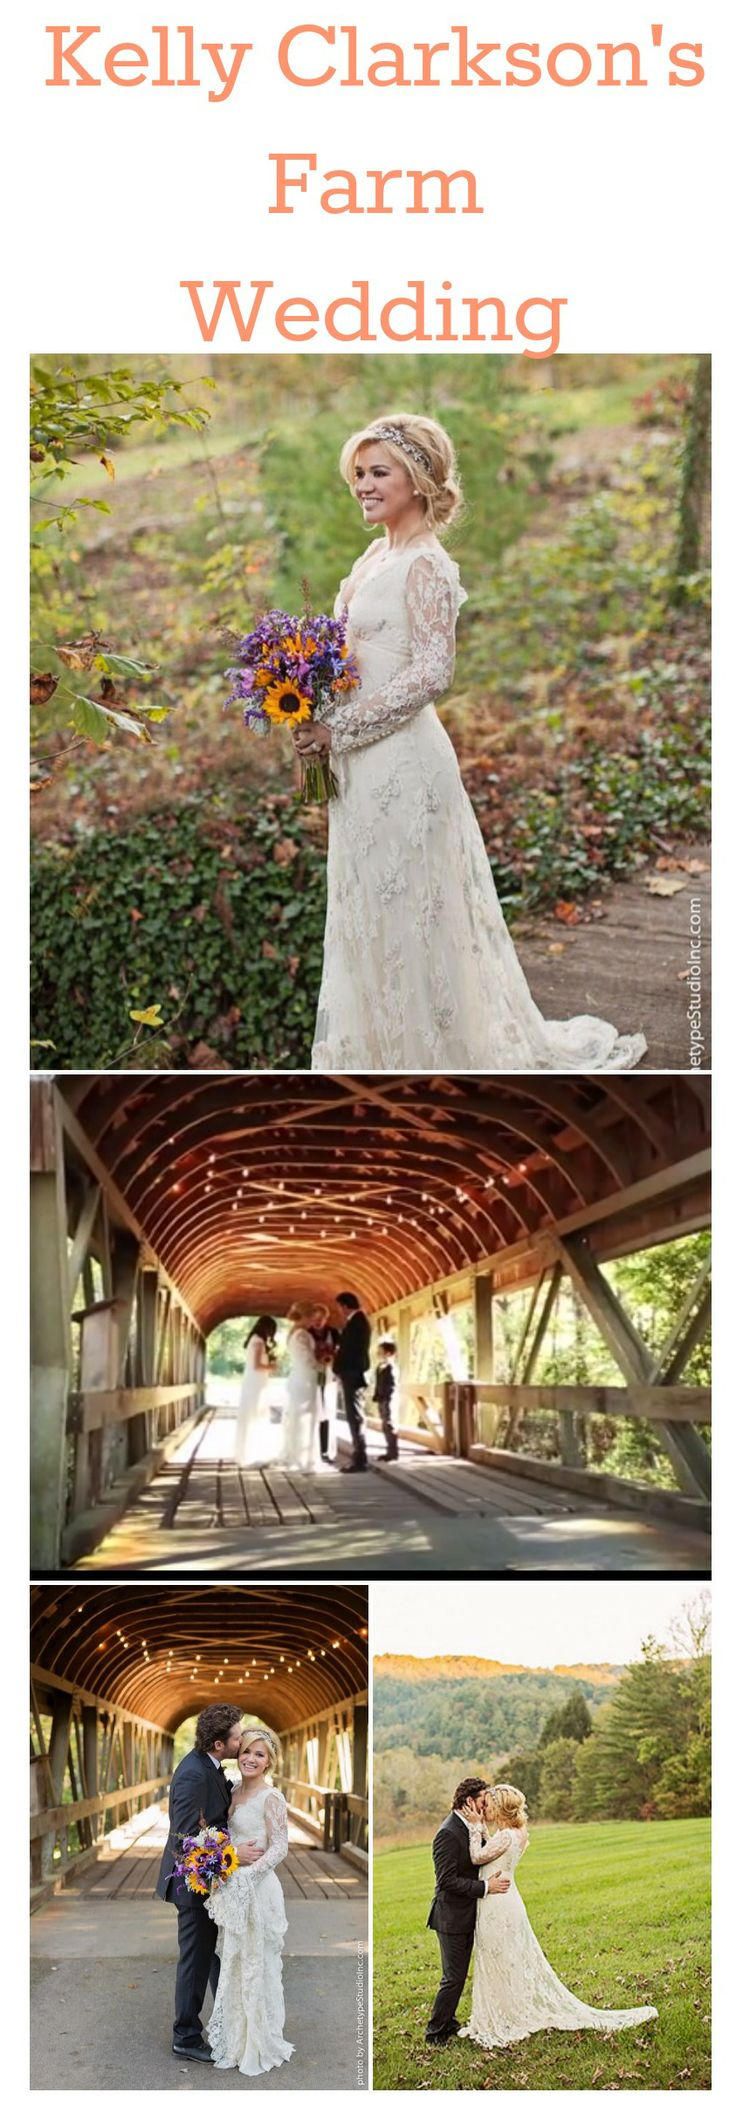 best kelly clarkson wedding images on pinterest celebrity